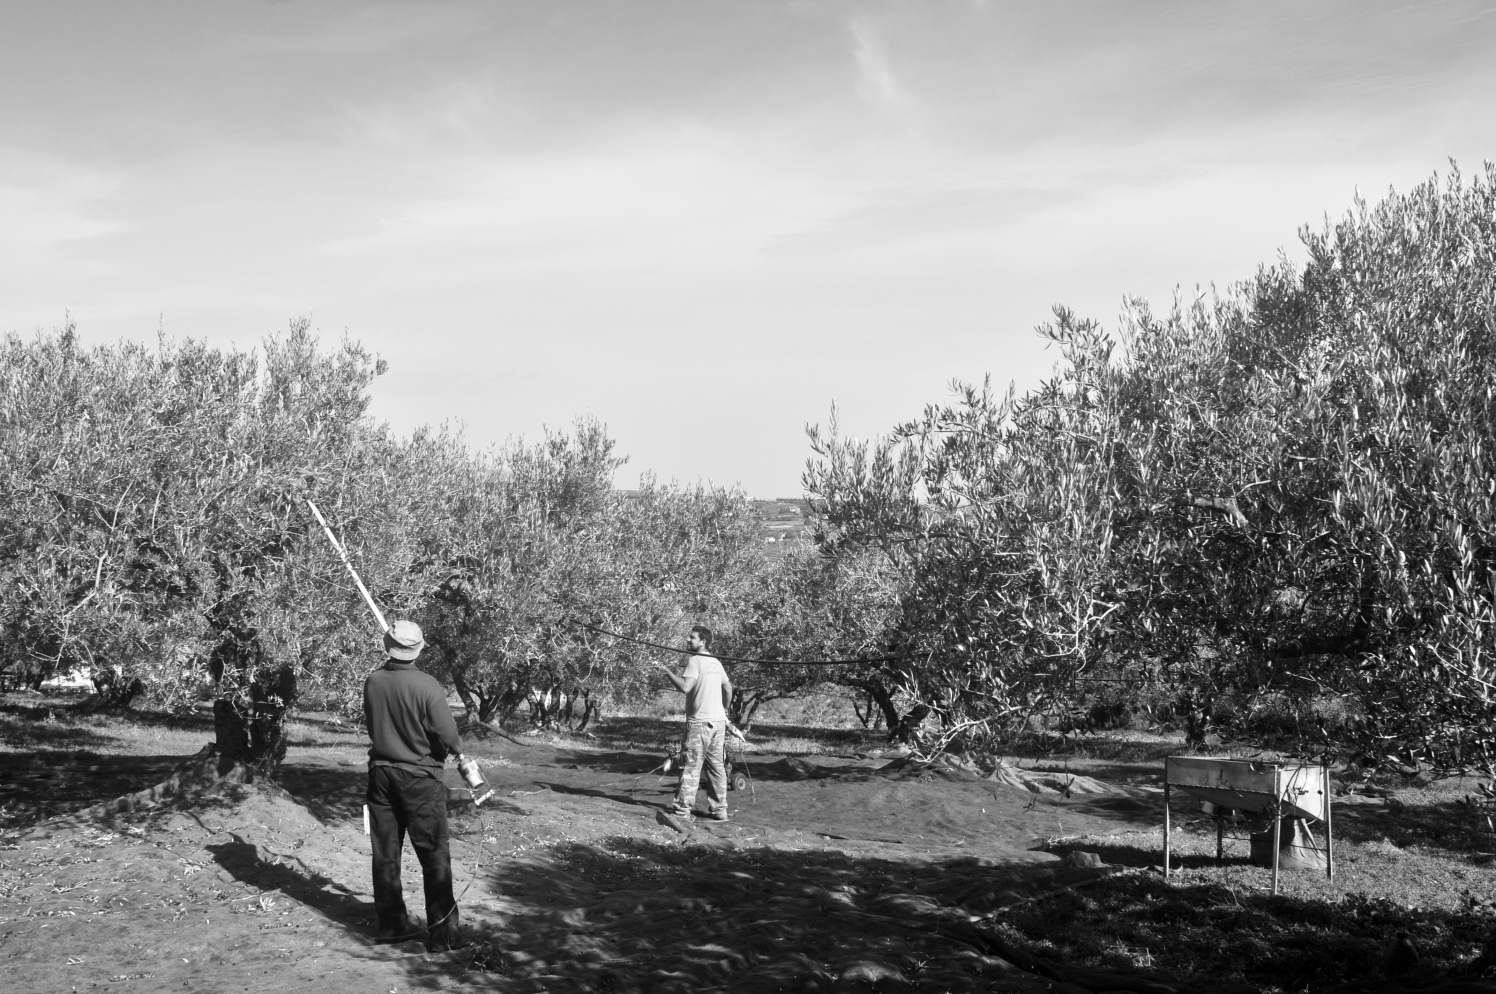 Working in the olives groves